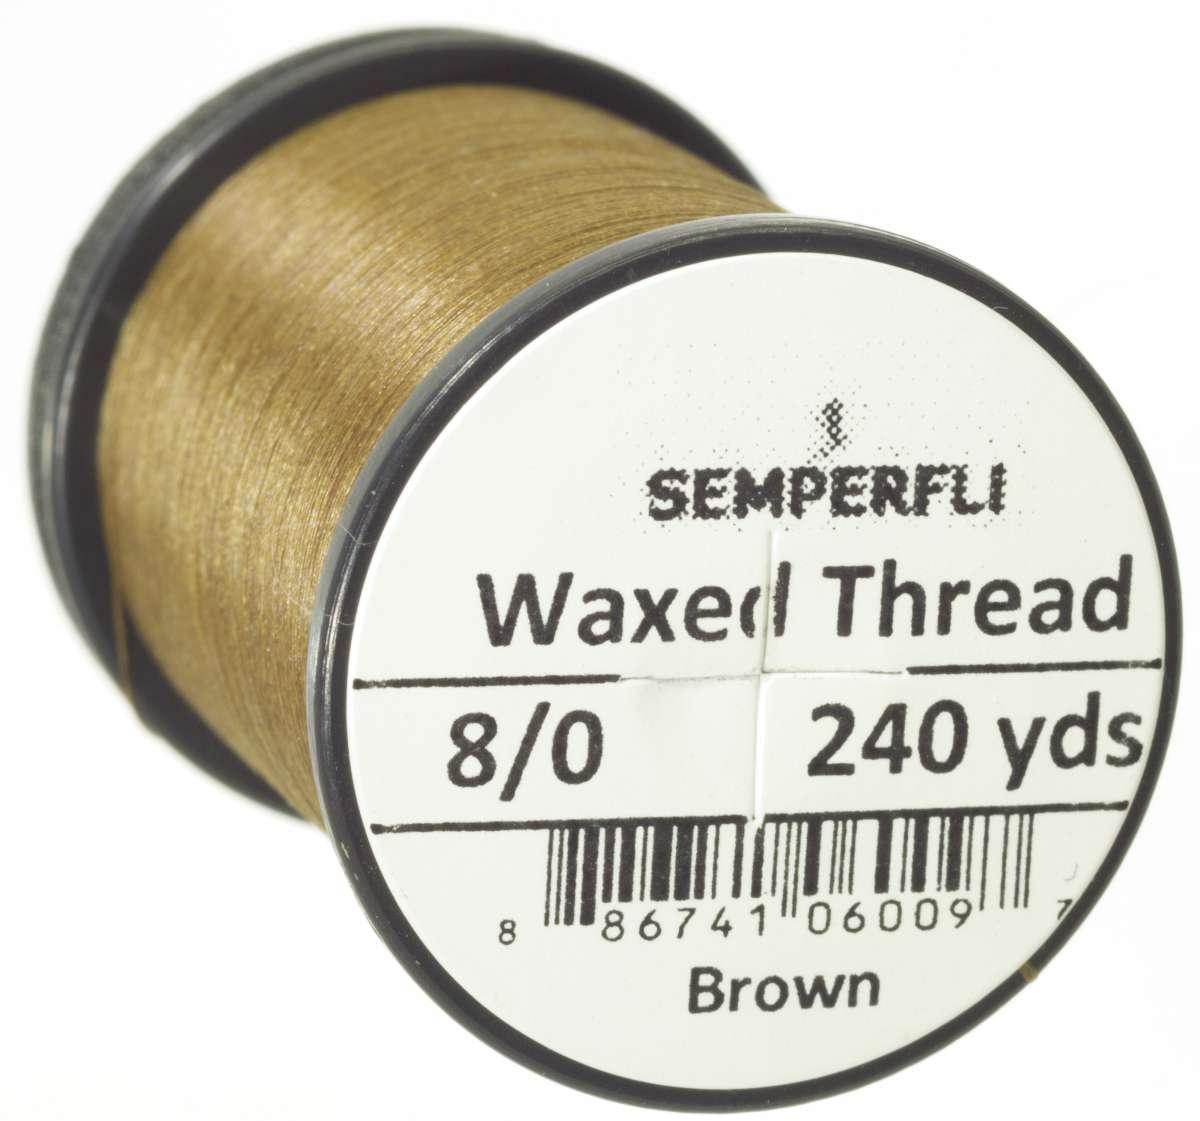 8/0 Classic Waxed Thread Brown Sem-0400-1820